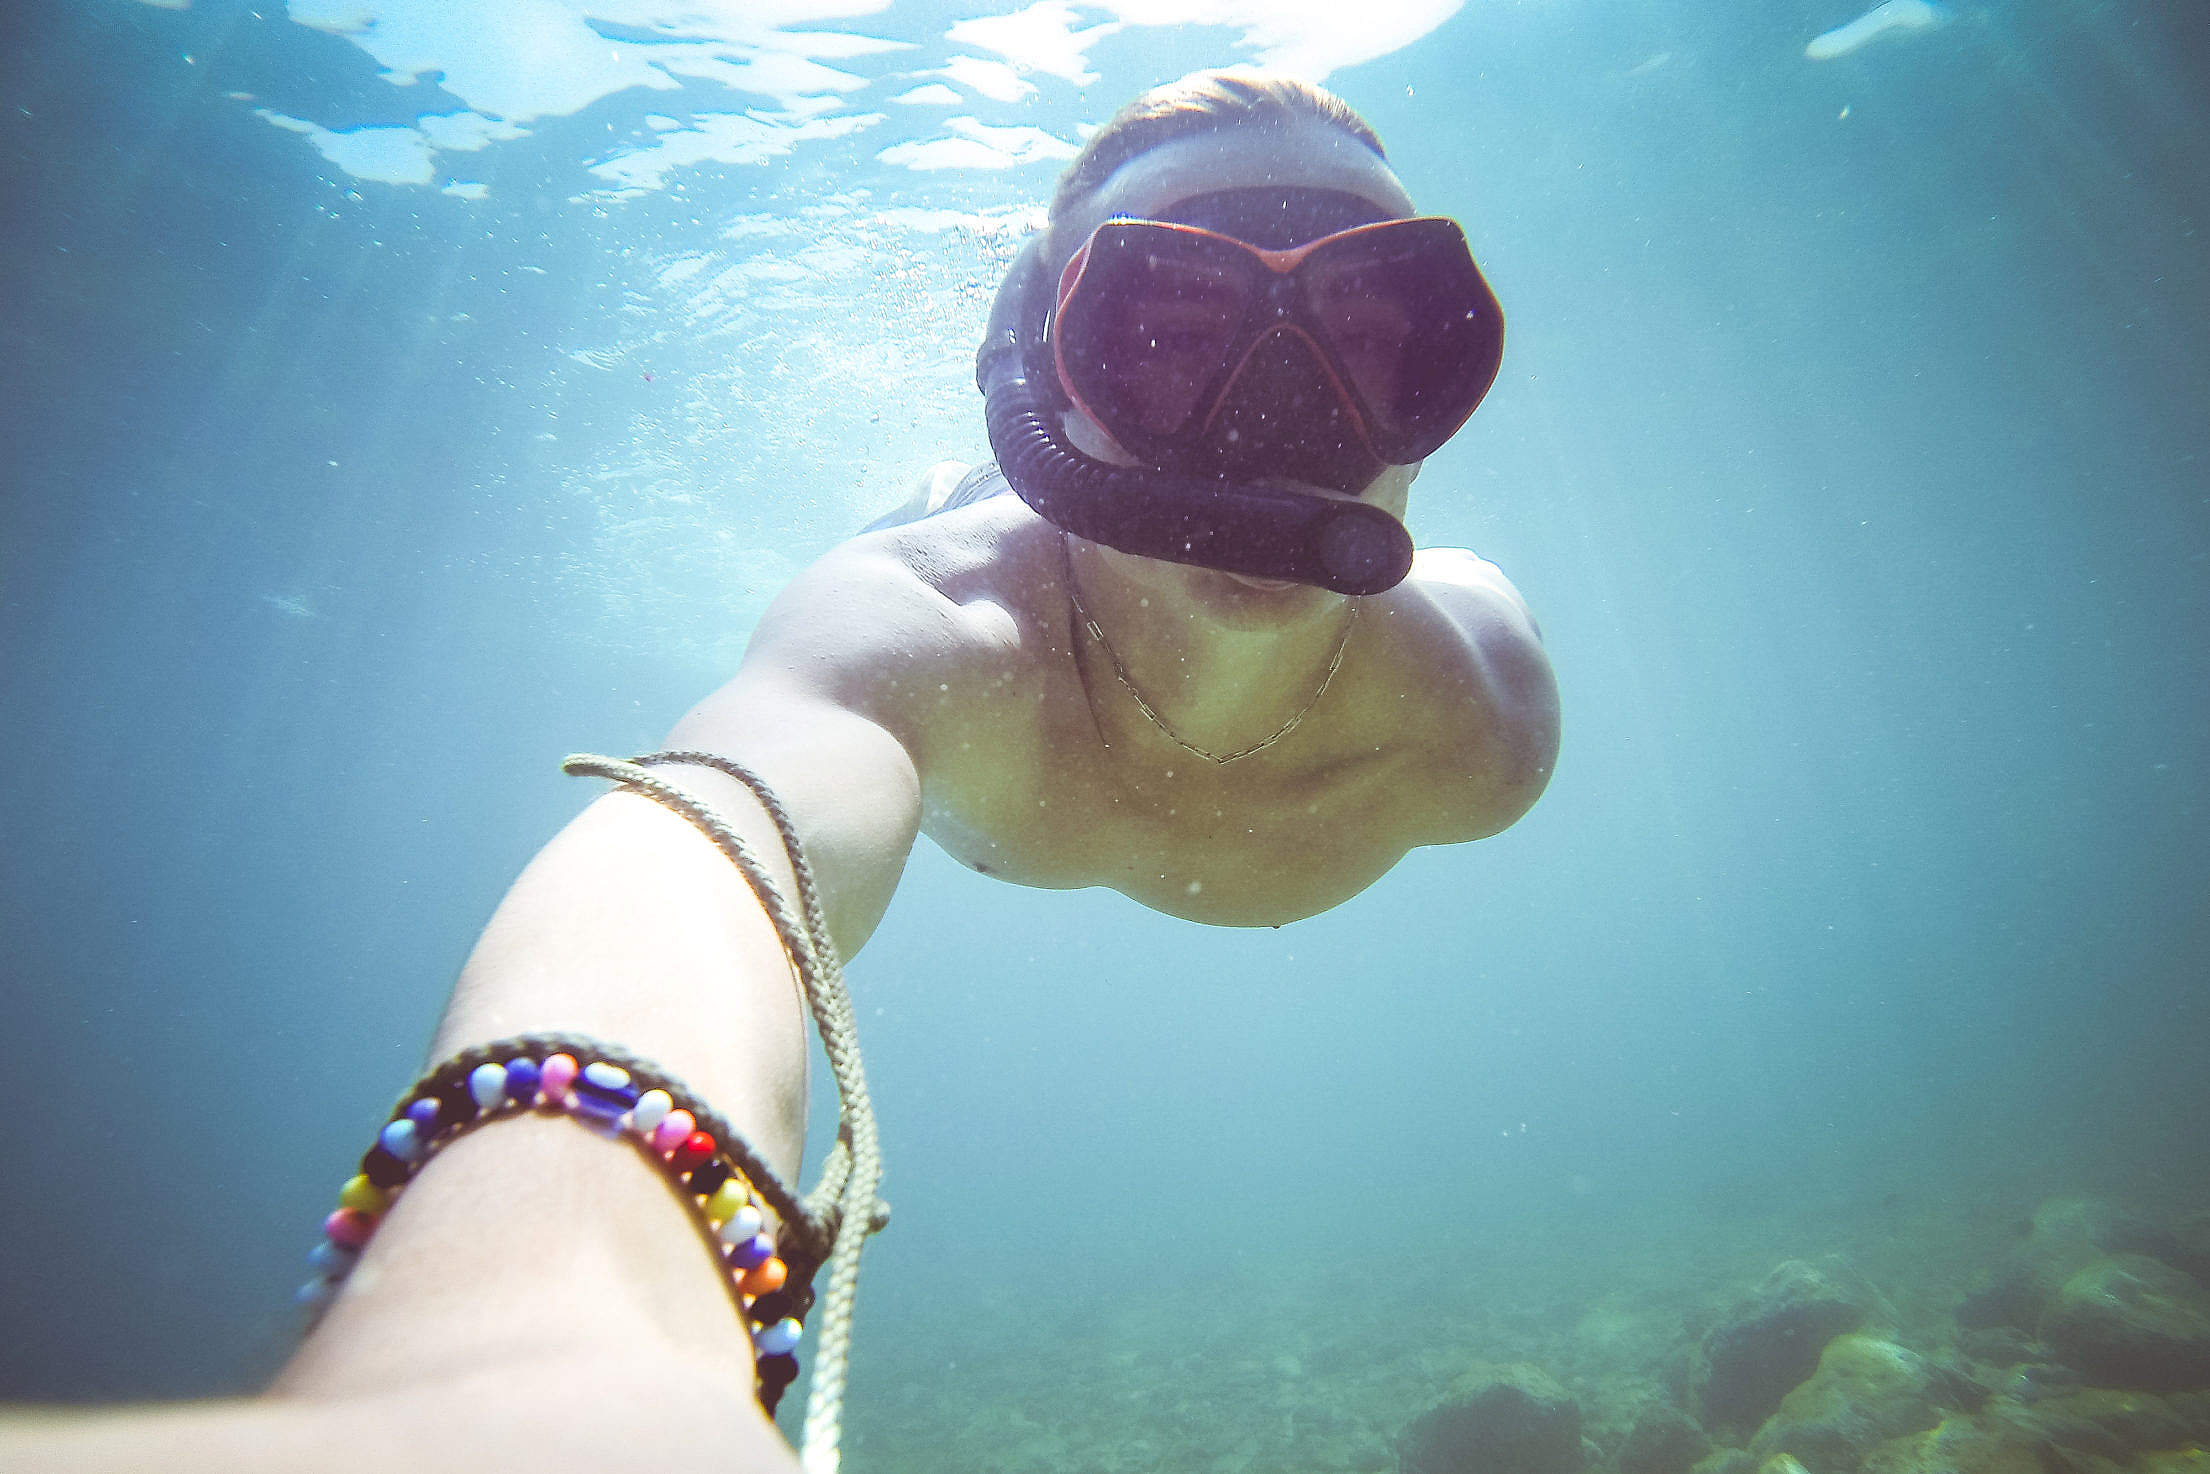 Underwater Diving/Snorkeling Selfie in The Sea Free Stock Photo